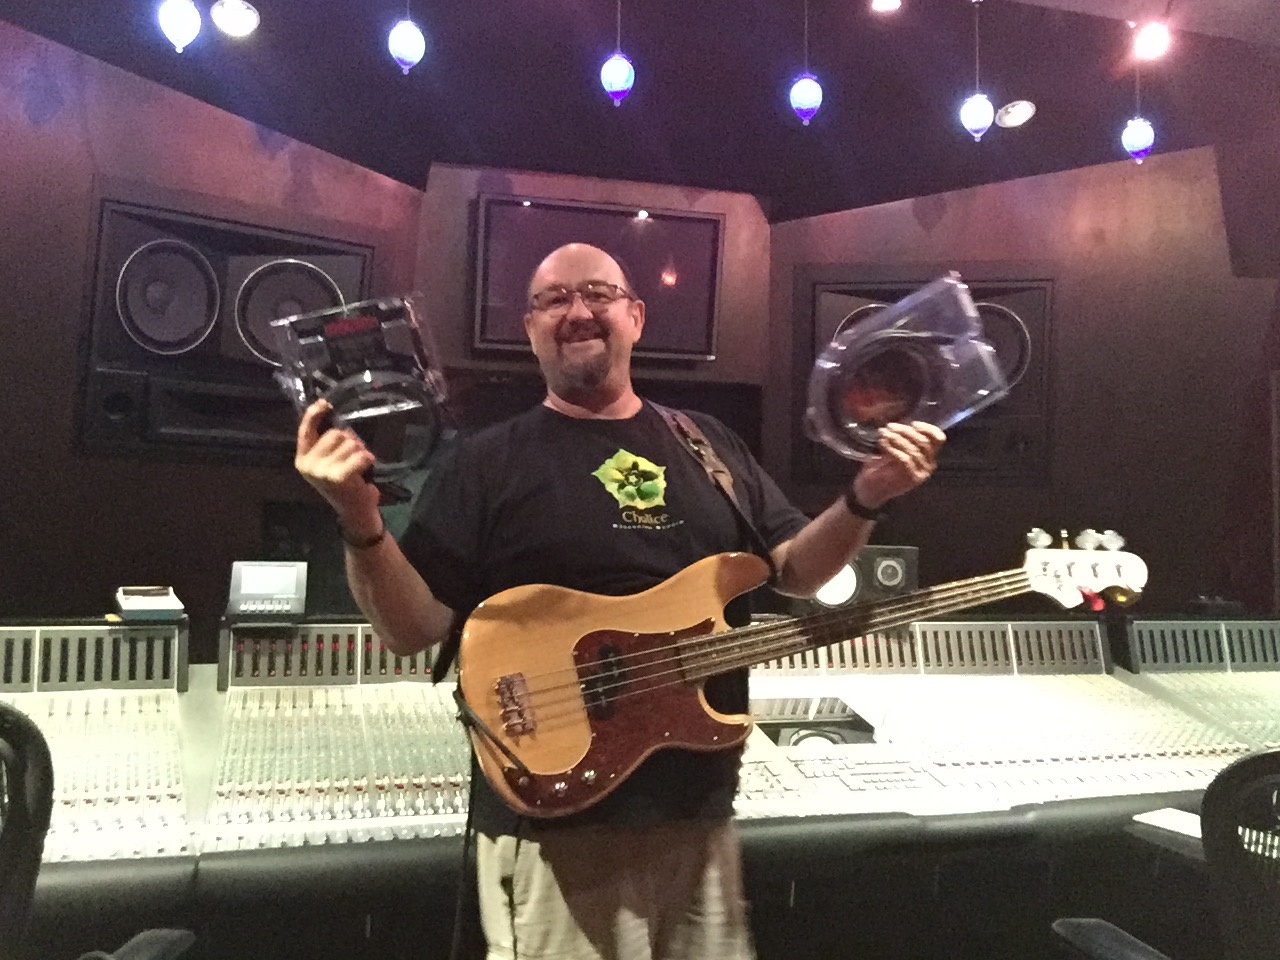 Bill Kaylor of Chalice Studios with Mogami Cable